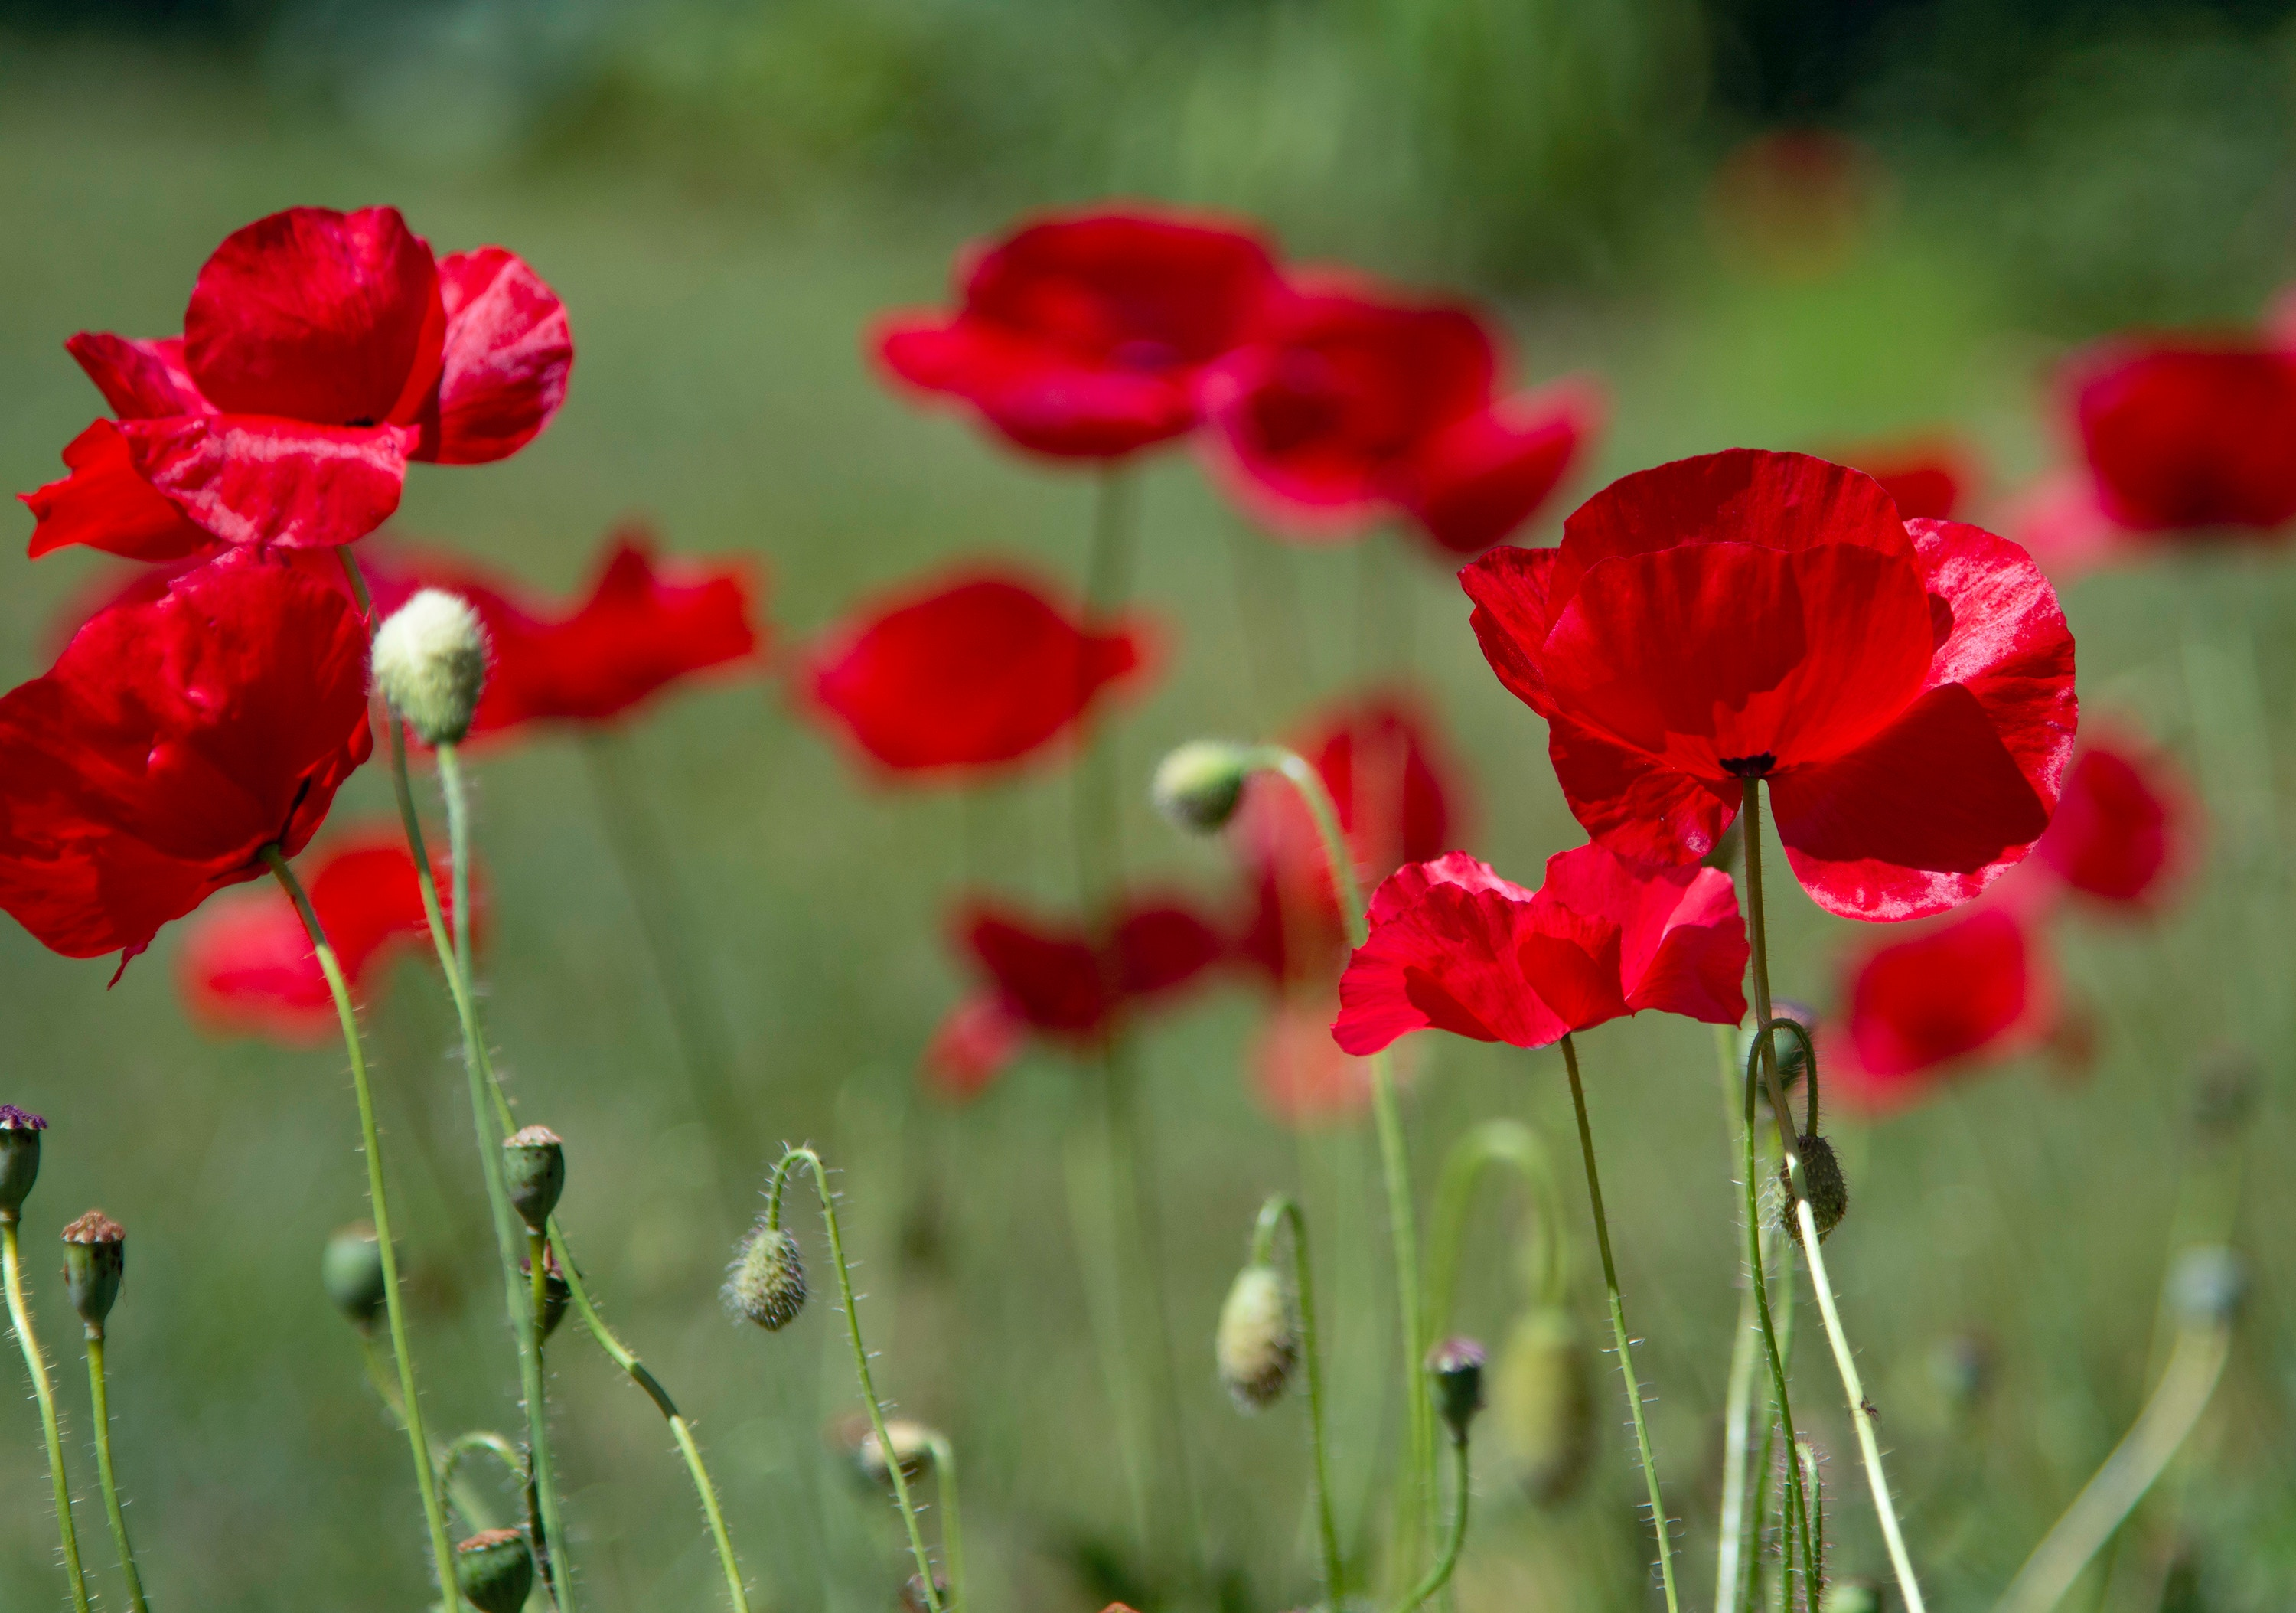 Rev Dr Mark Davidson's reflections on Remembrance Sunday